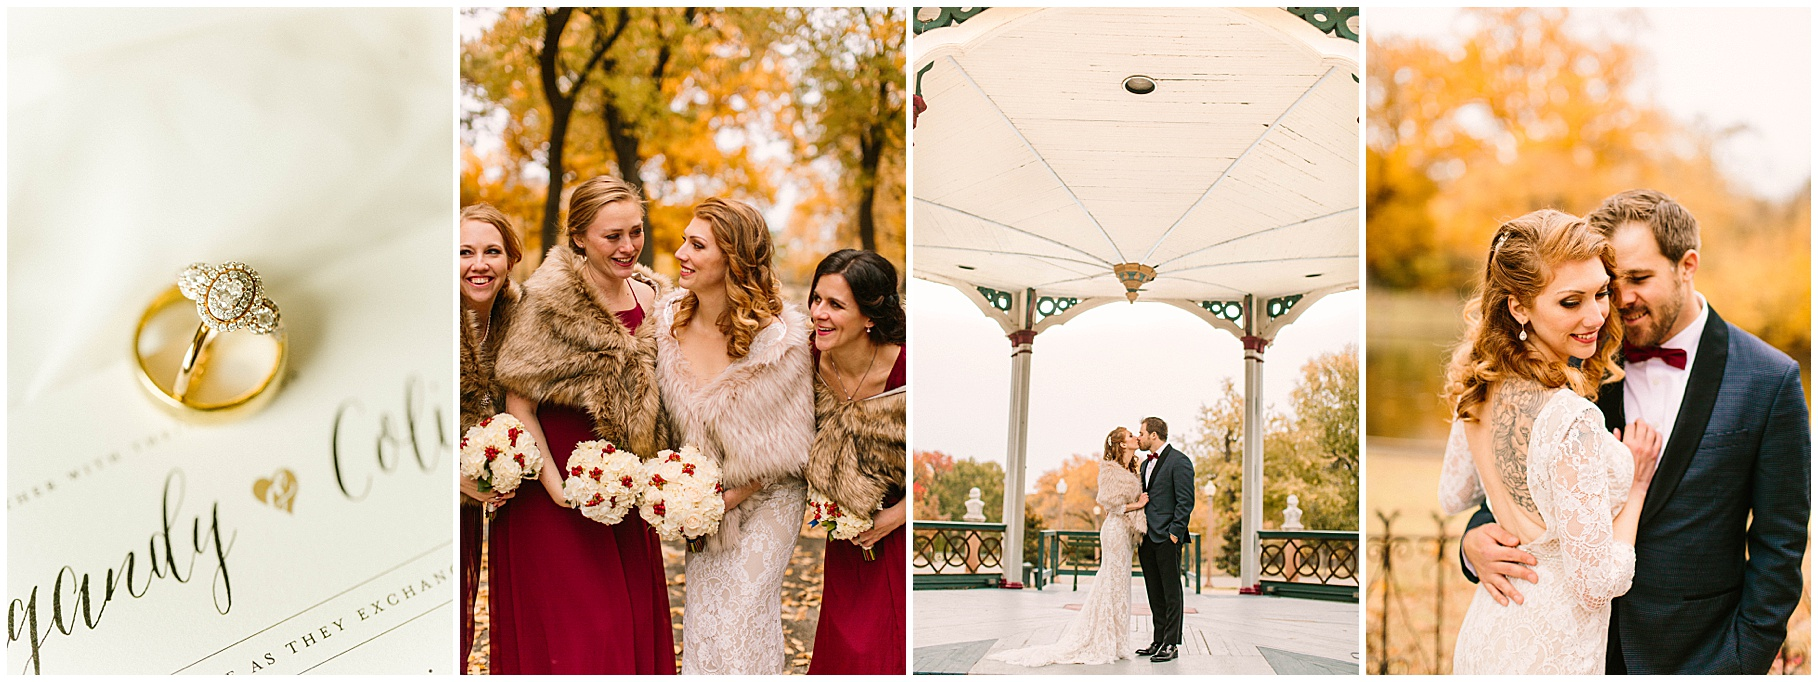 Veronica Young Photography, St. Louis weddings, Fall inspo